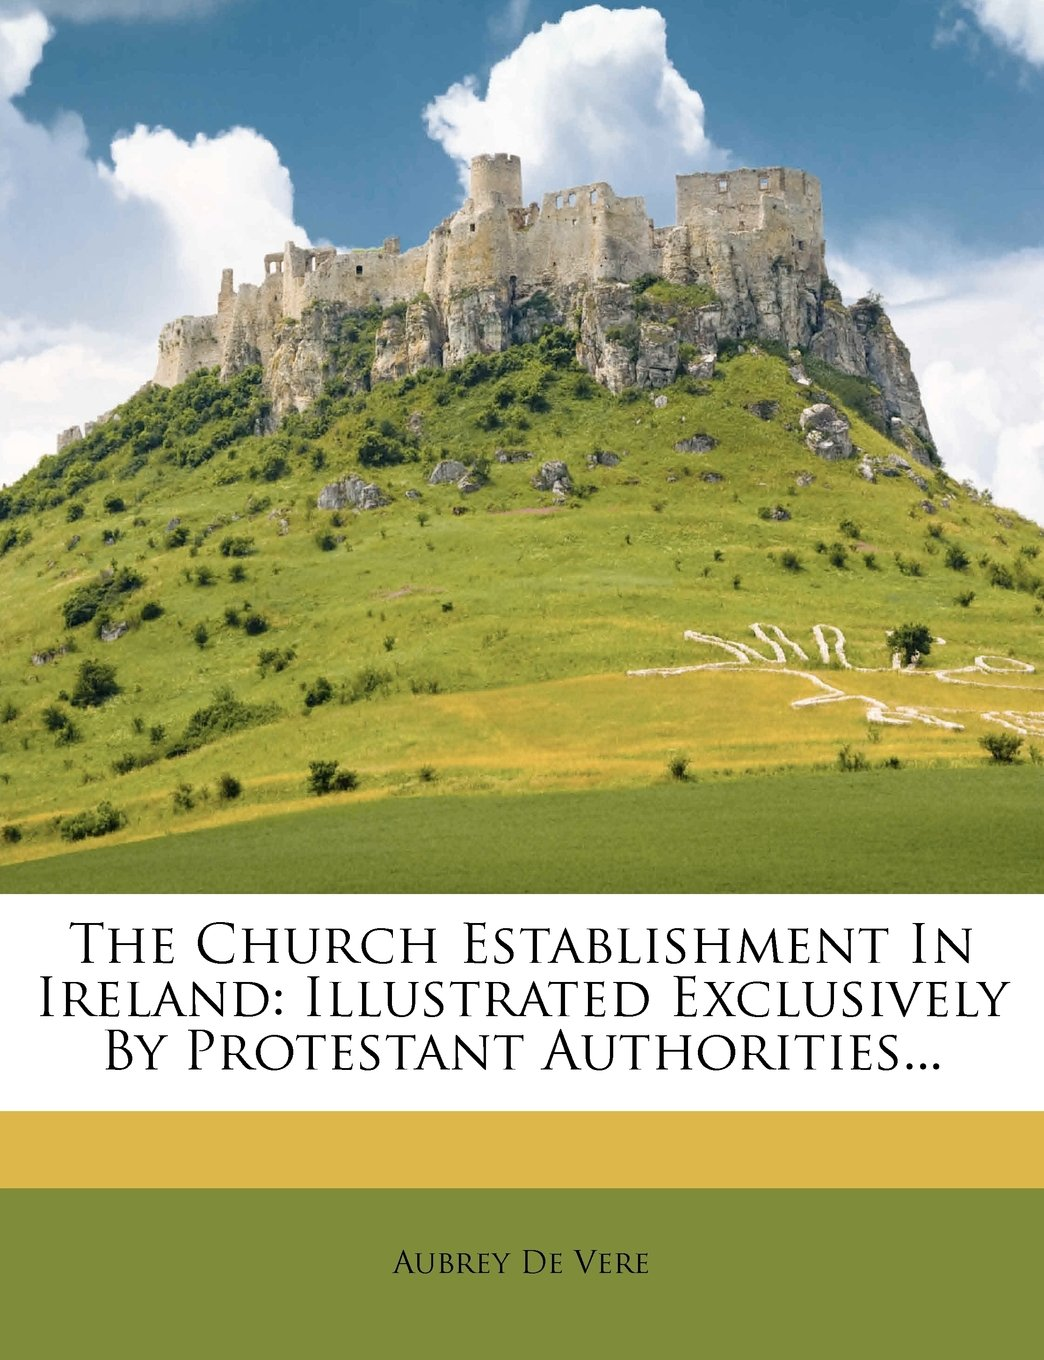 The Church Establishment In Ireland: Illustrated Exclusively By Protestant Authorities... pdf